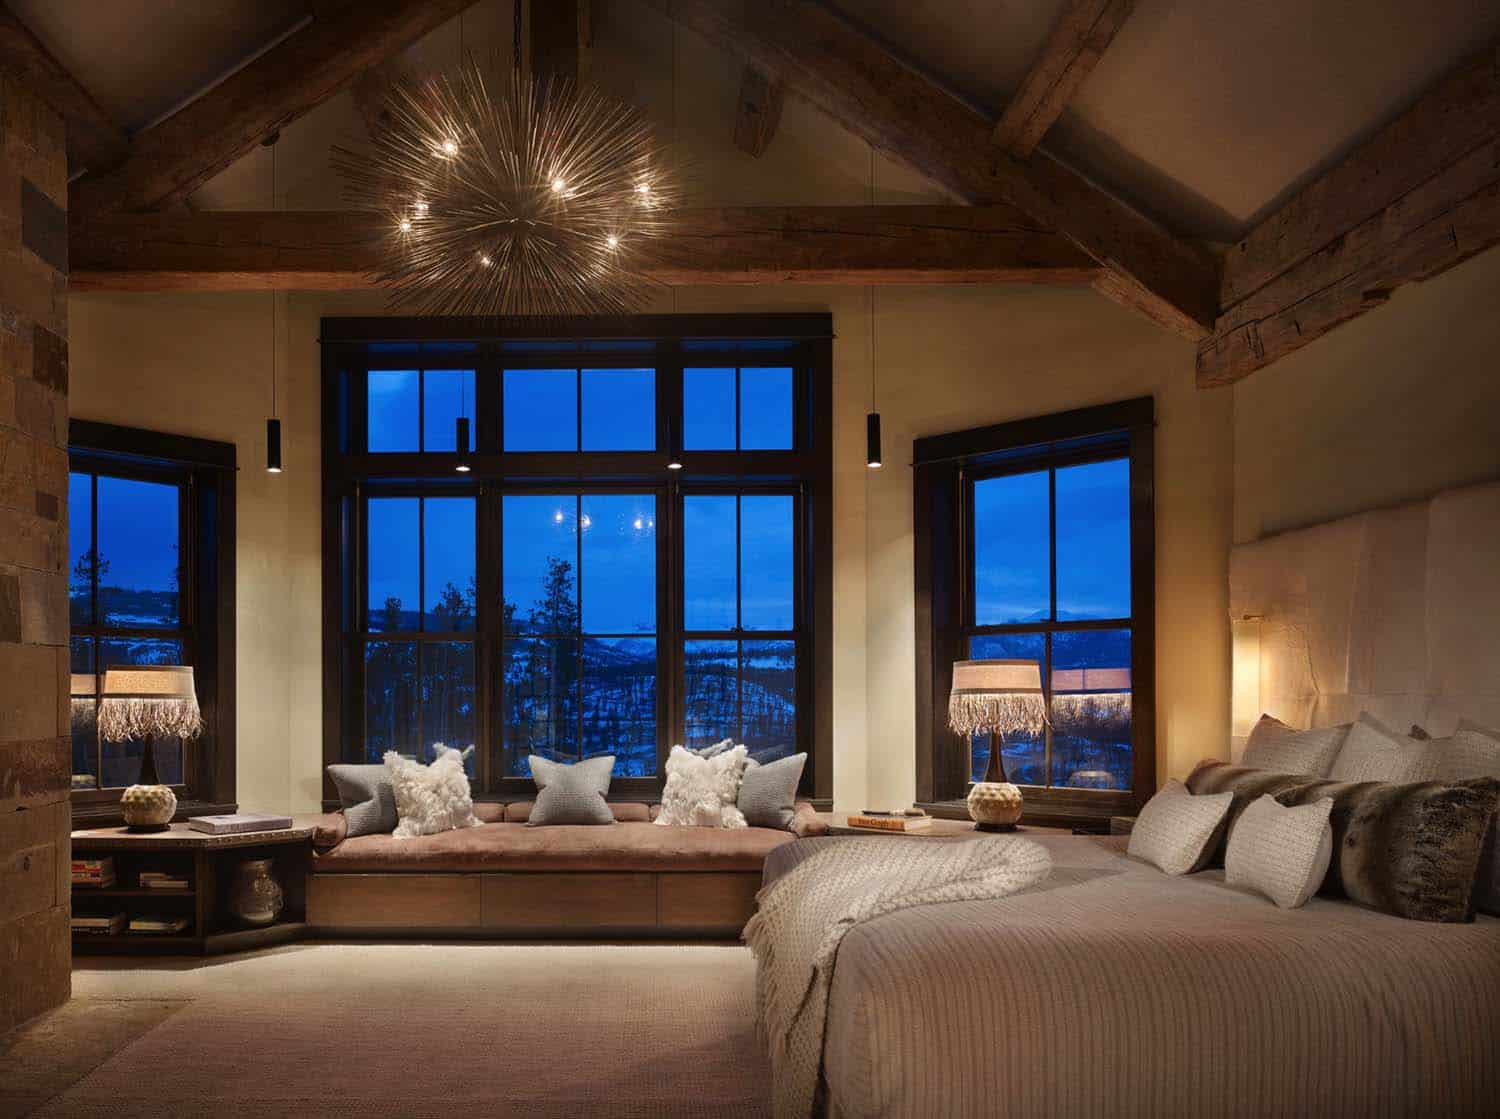 Amazing Cozy-Rustic Bedrooms-35-1 Kindesign